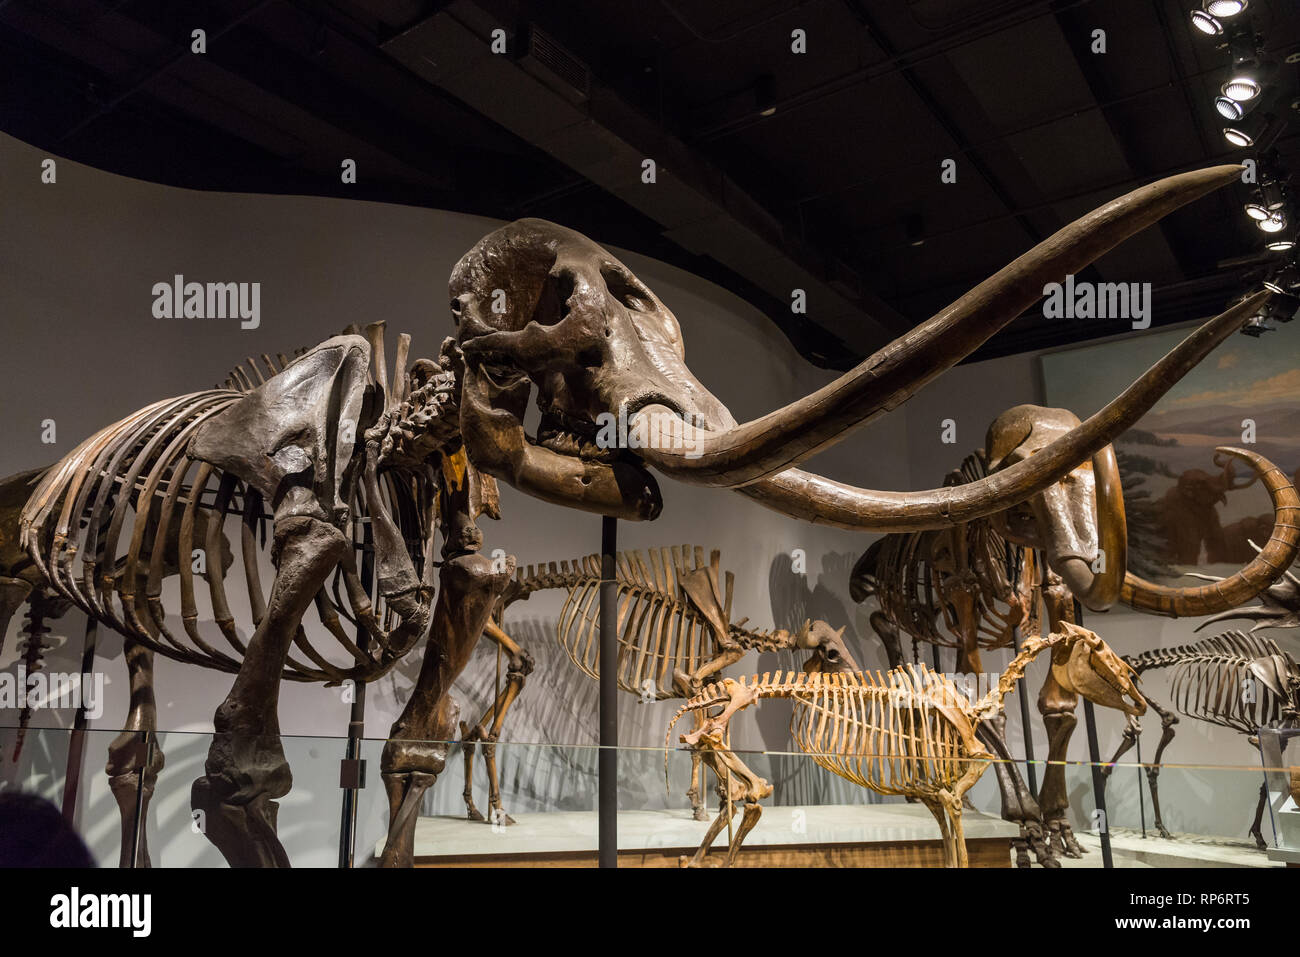 Fossil skeletons of Mastodon and woolly mammoth. Mammals of Ice Age exhibit. The Field Museum. Chicago, Illinois, USA. - Stock Image